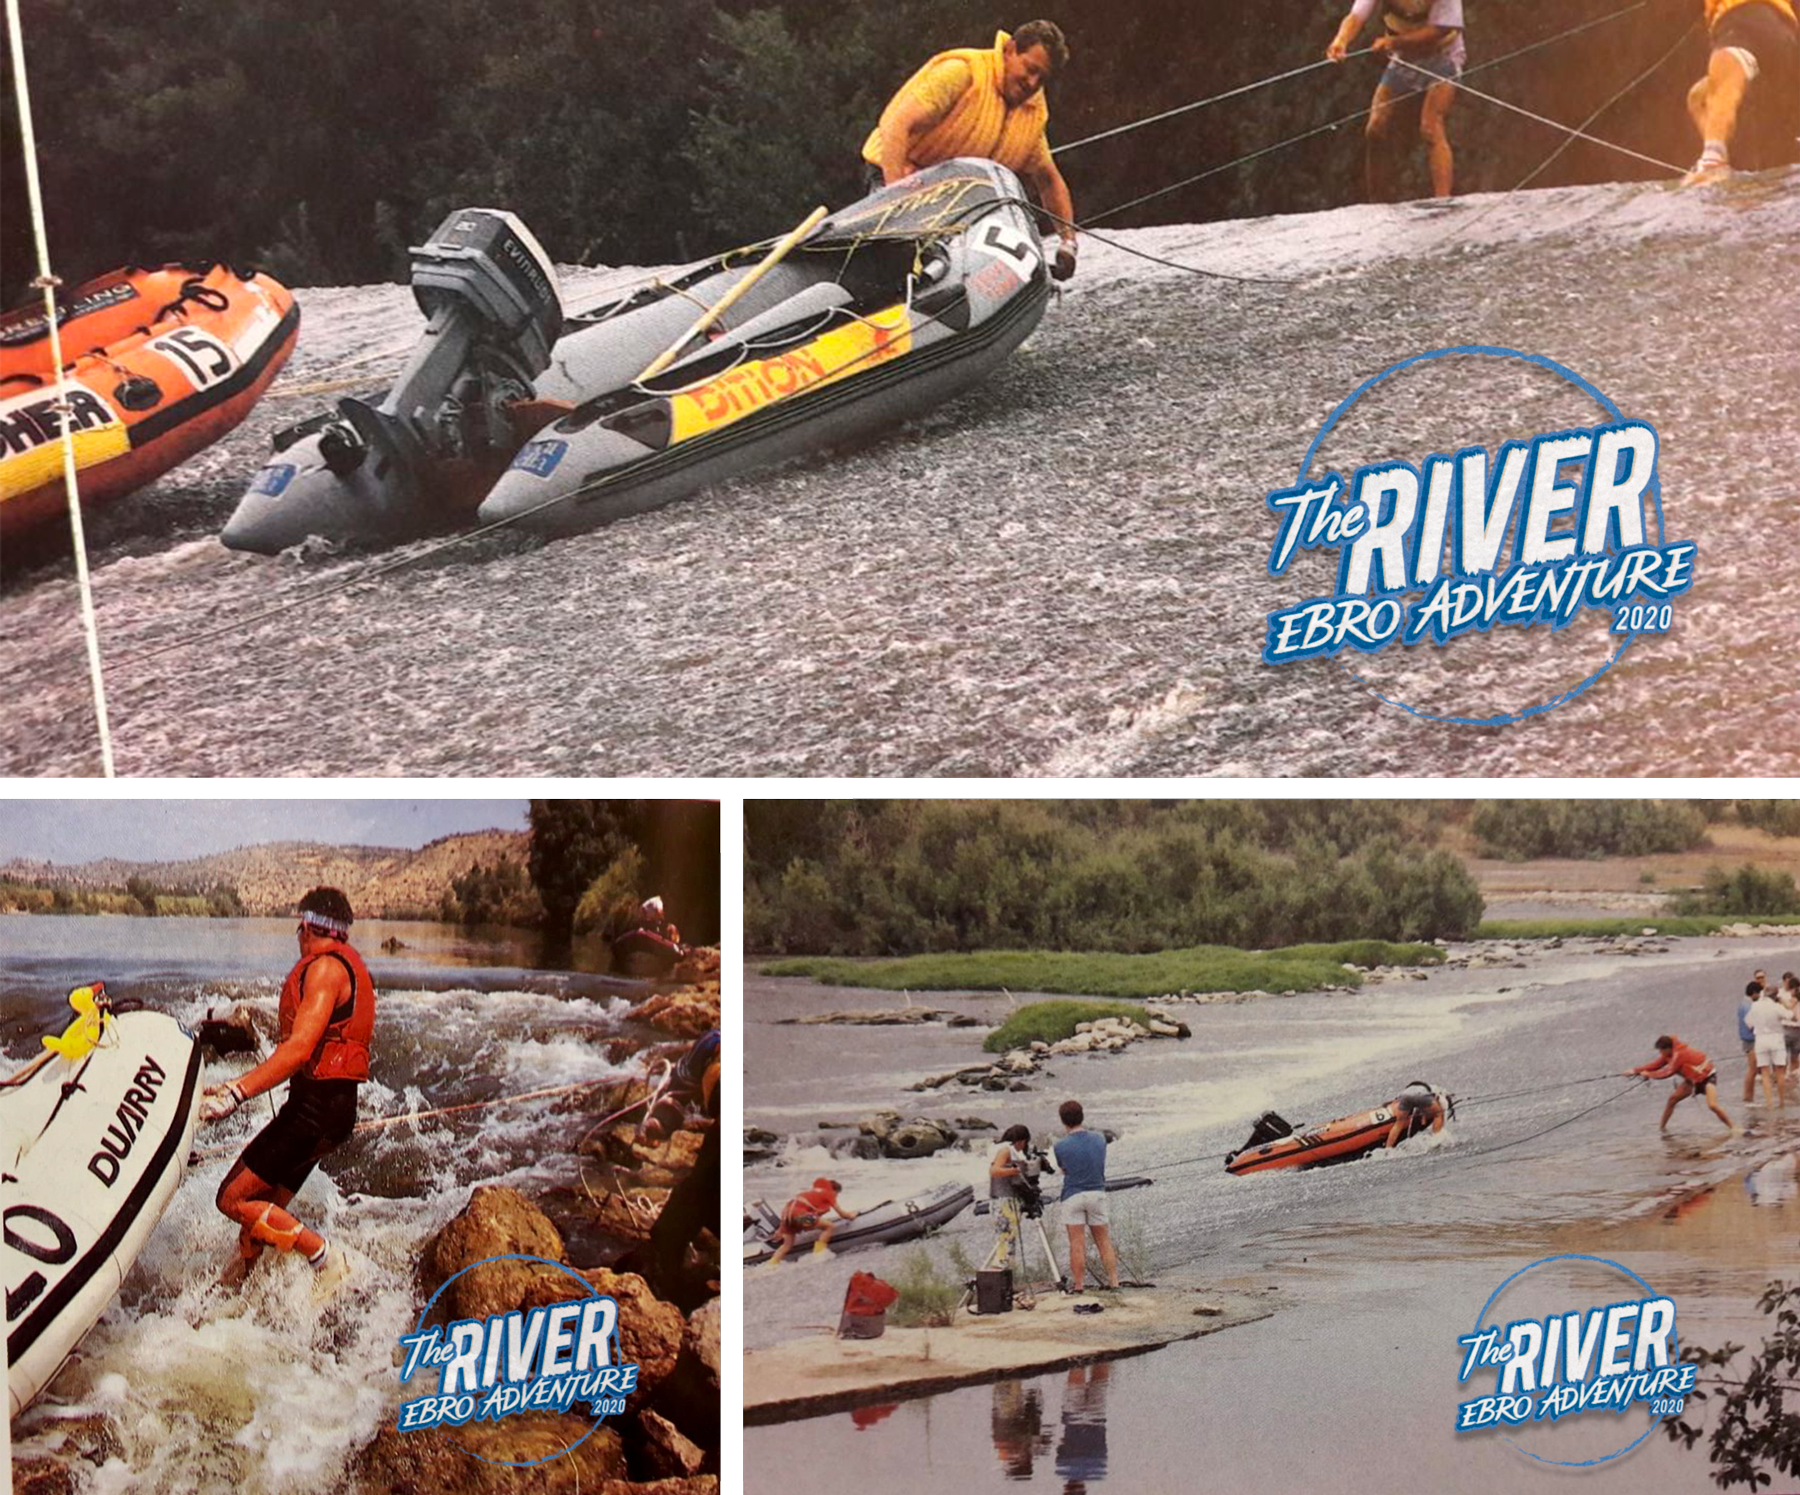 the-river-ebro-adventure_compo